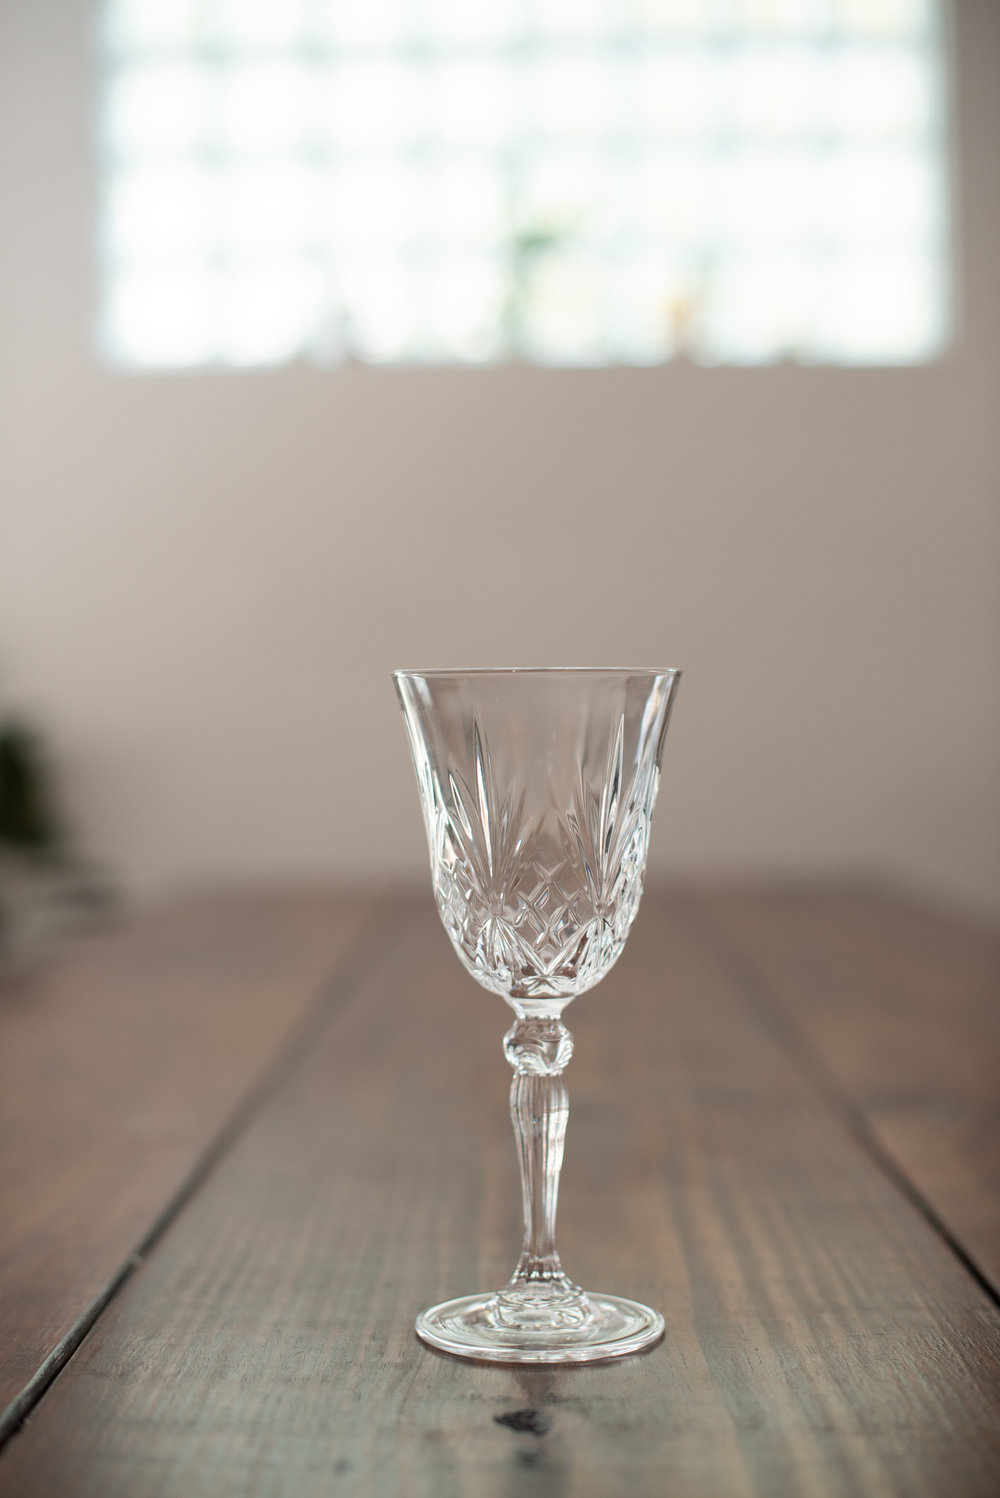 Crystal Wine Glass   Size: 9 oz  Price: $1.50  Quantity available: 150